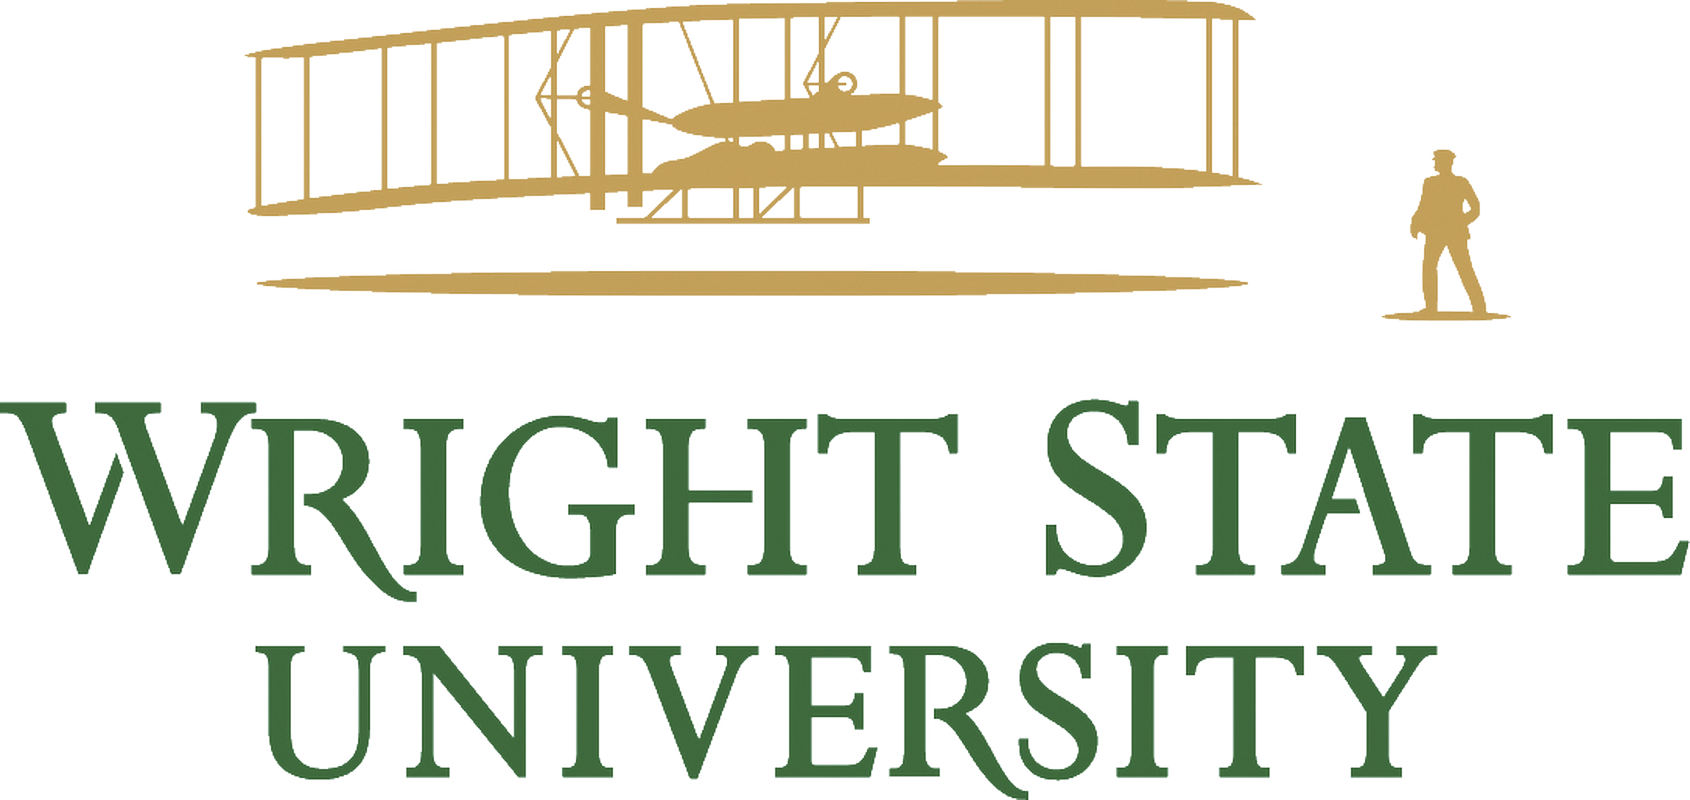 Wright-State-University-12.png